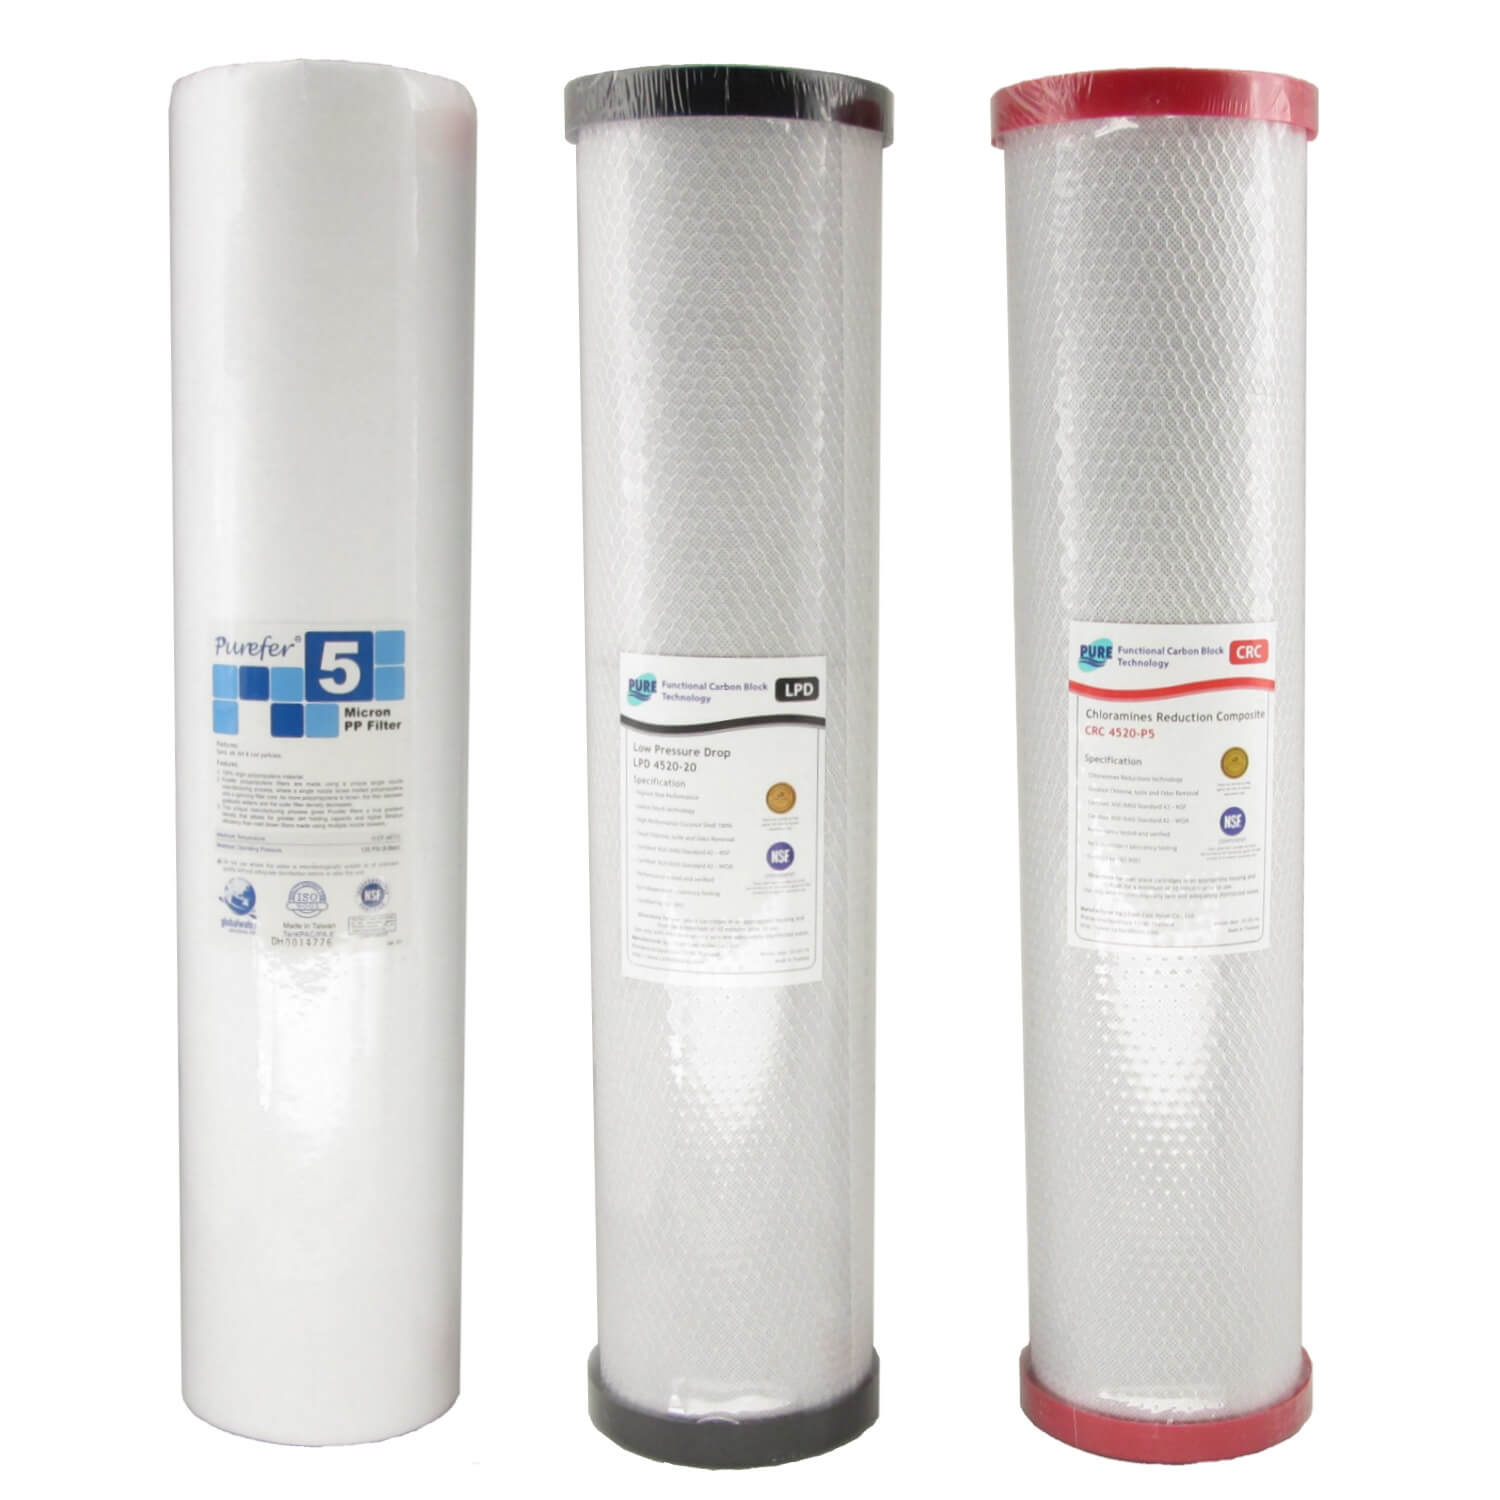 WaterMark Certified Big Blue Triple Whole House Water Filter System 20